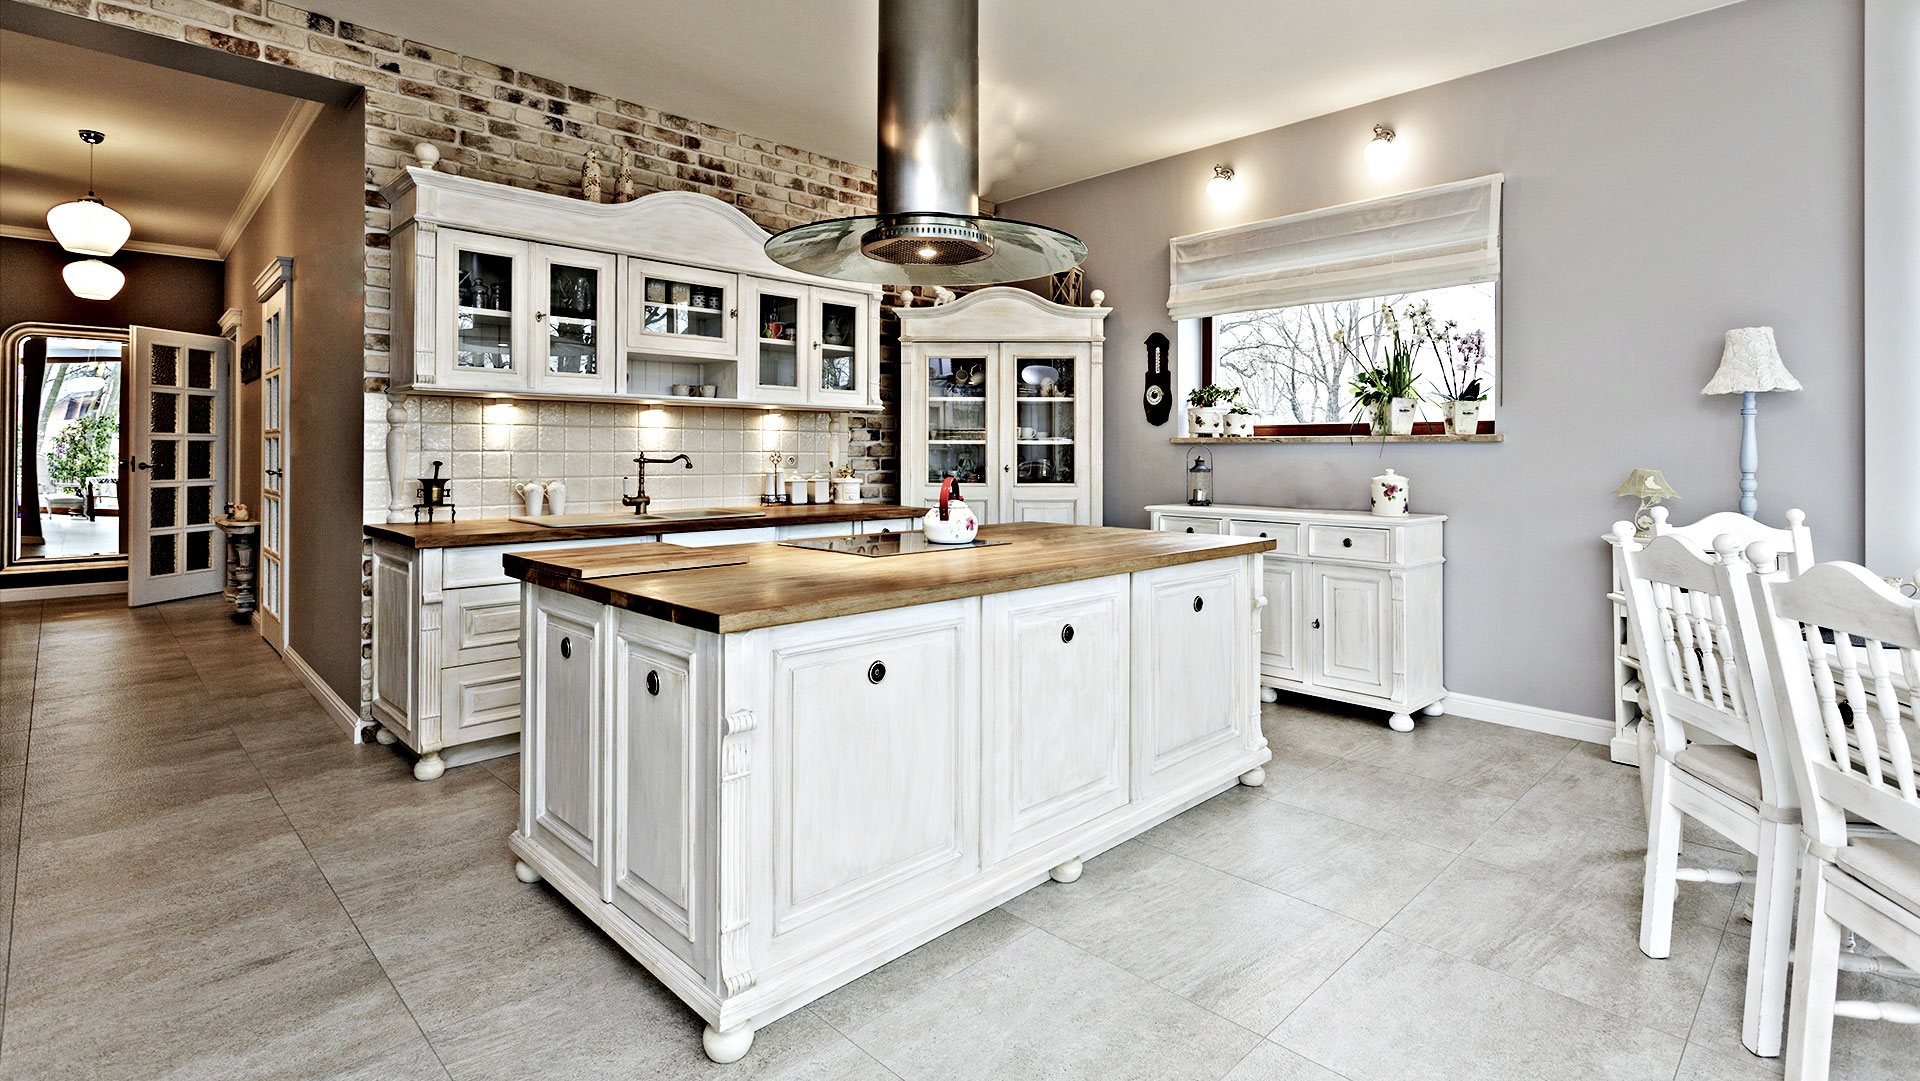 Home Run Remodelers Inc. Remodeled Kitchen 2